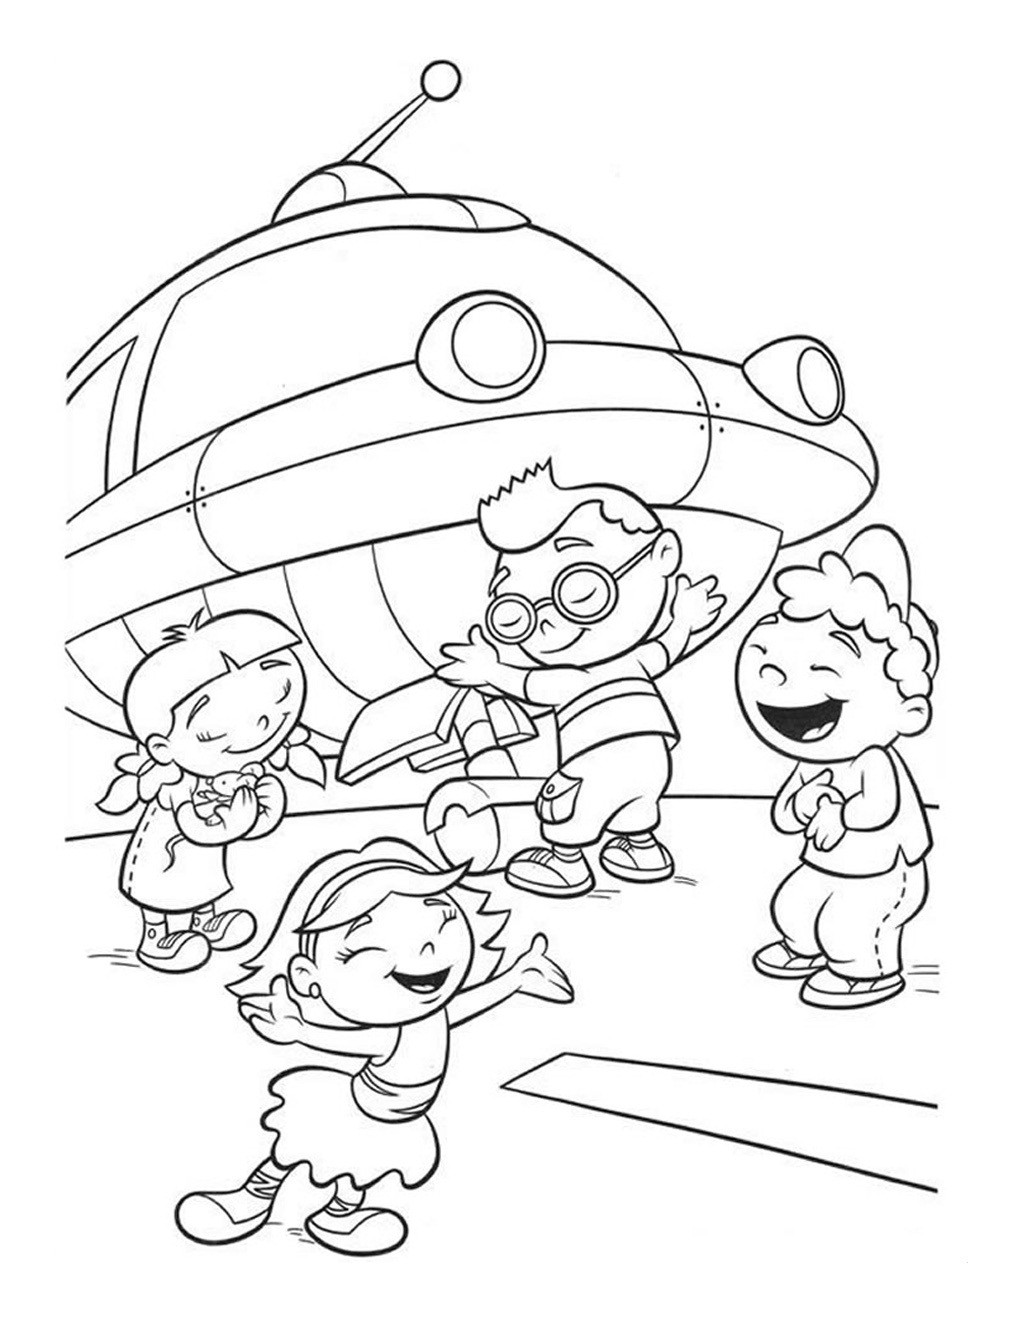 Small Coloring Pages For Kids  Free Printable Little Einsteins Coloring Pages Get ready